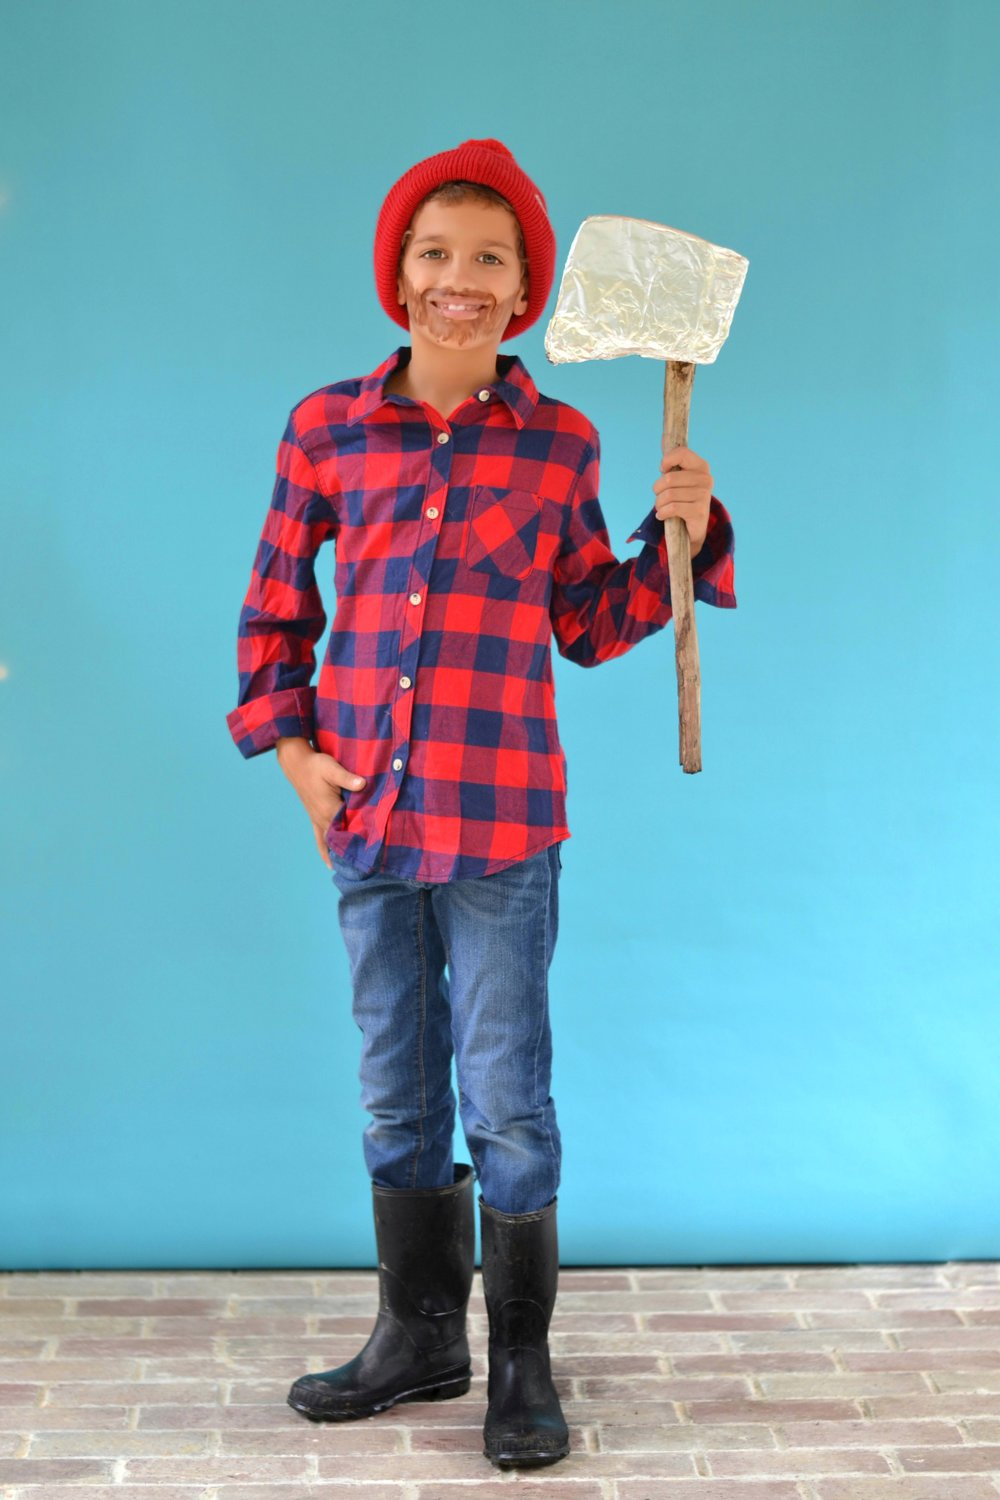 Quick and Creative Halloween Costumes Using What You Have